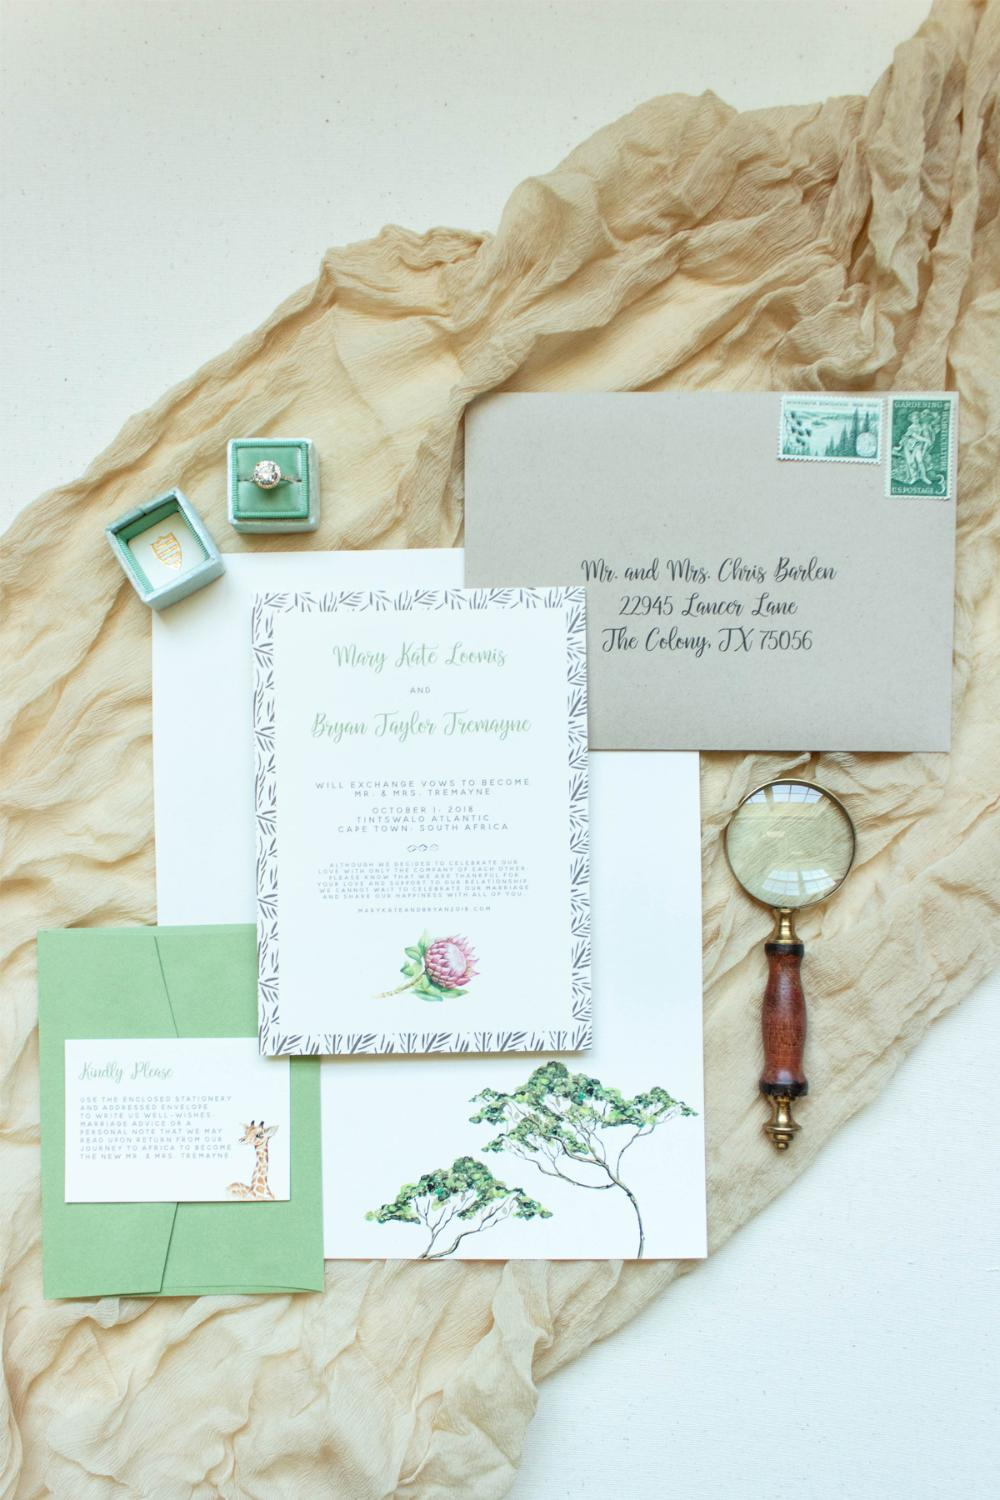 Africa African Safari Protea Sahara Jungle Wedding Invitation Green, Ivory and Brown w/RSVP, Details & Stationery